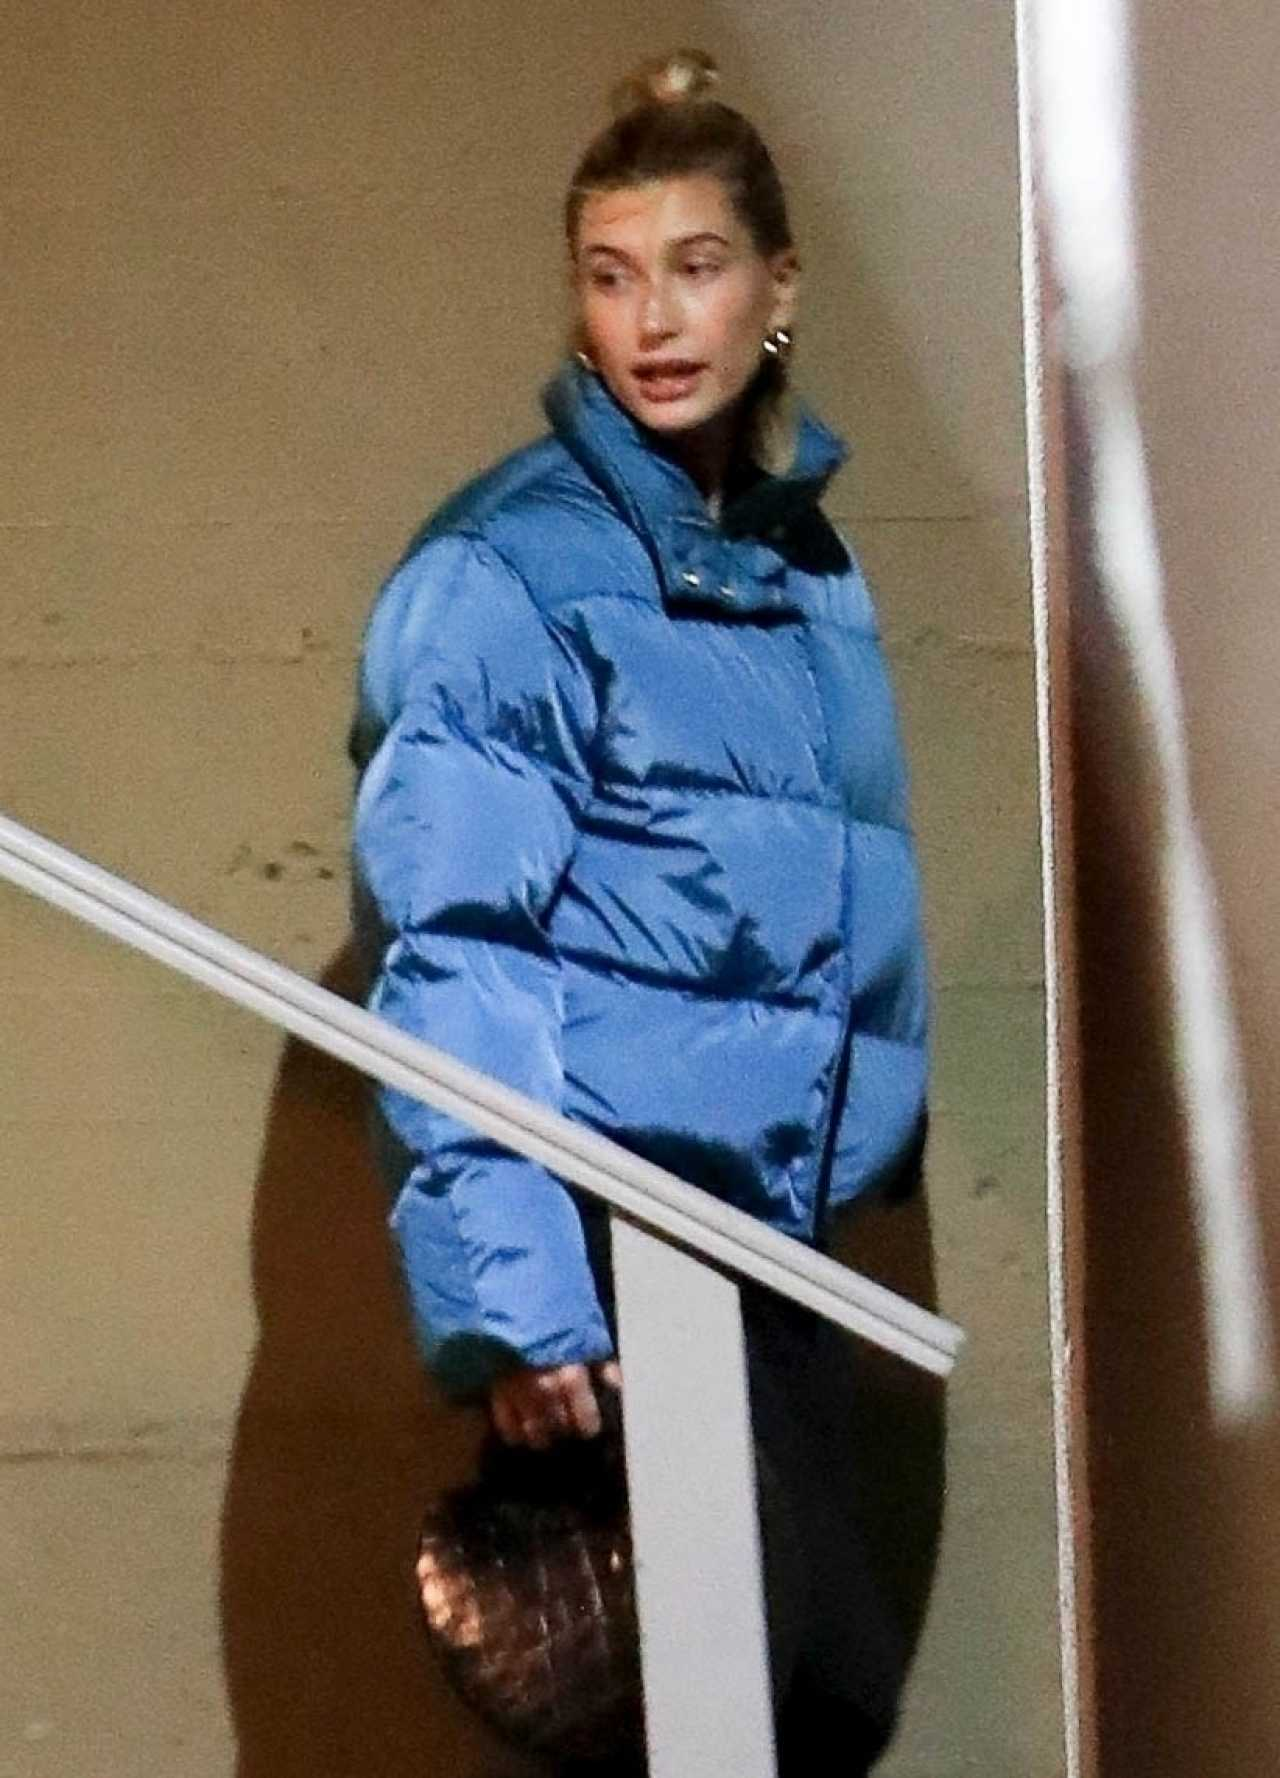 Hailey Bieber rocking a Oversized Acne Studios shiny blue nylon padded jacket with a nylon material, extra long sleeves and stand-up collar